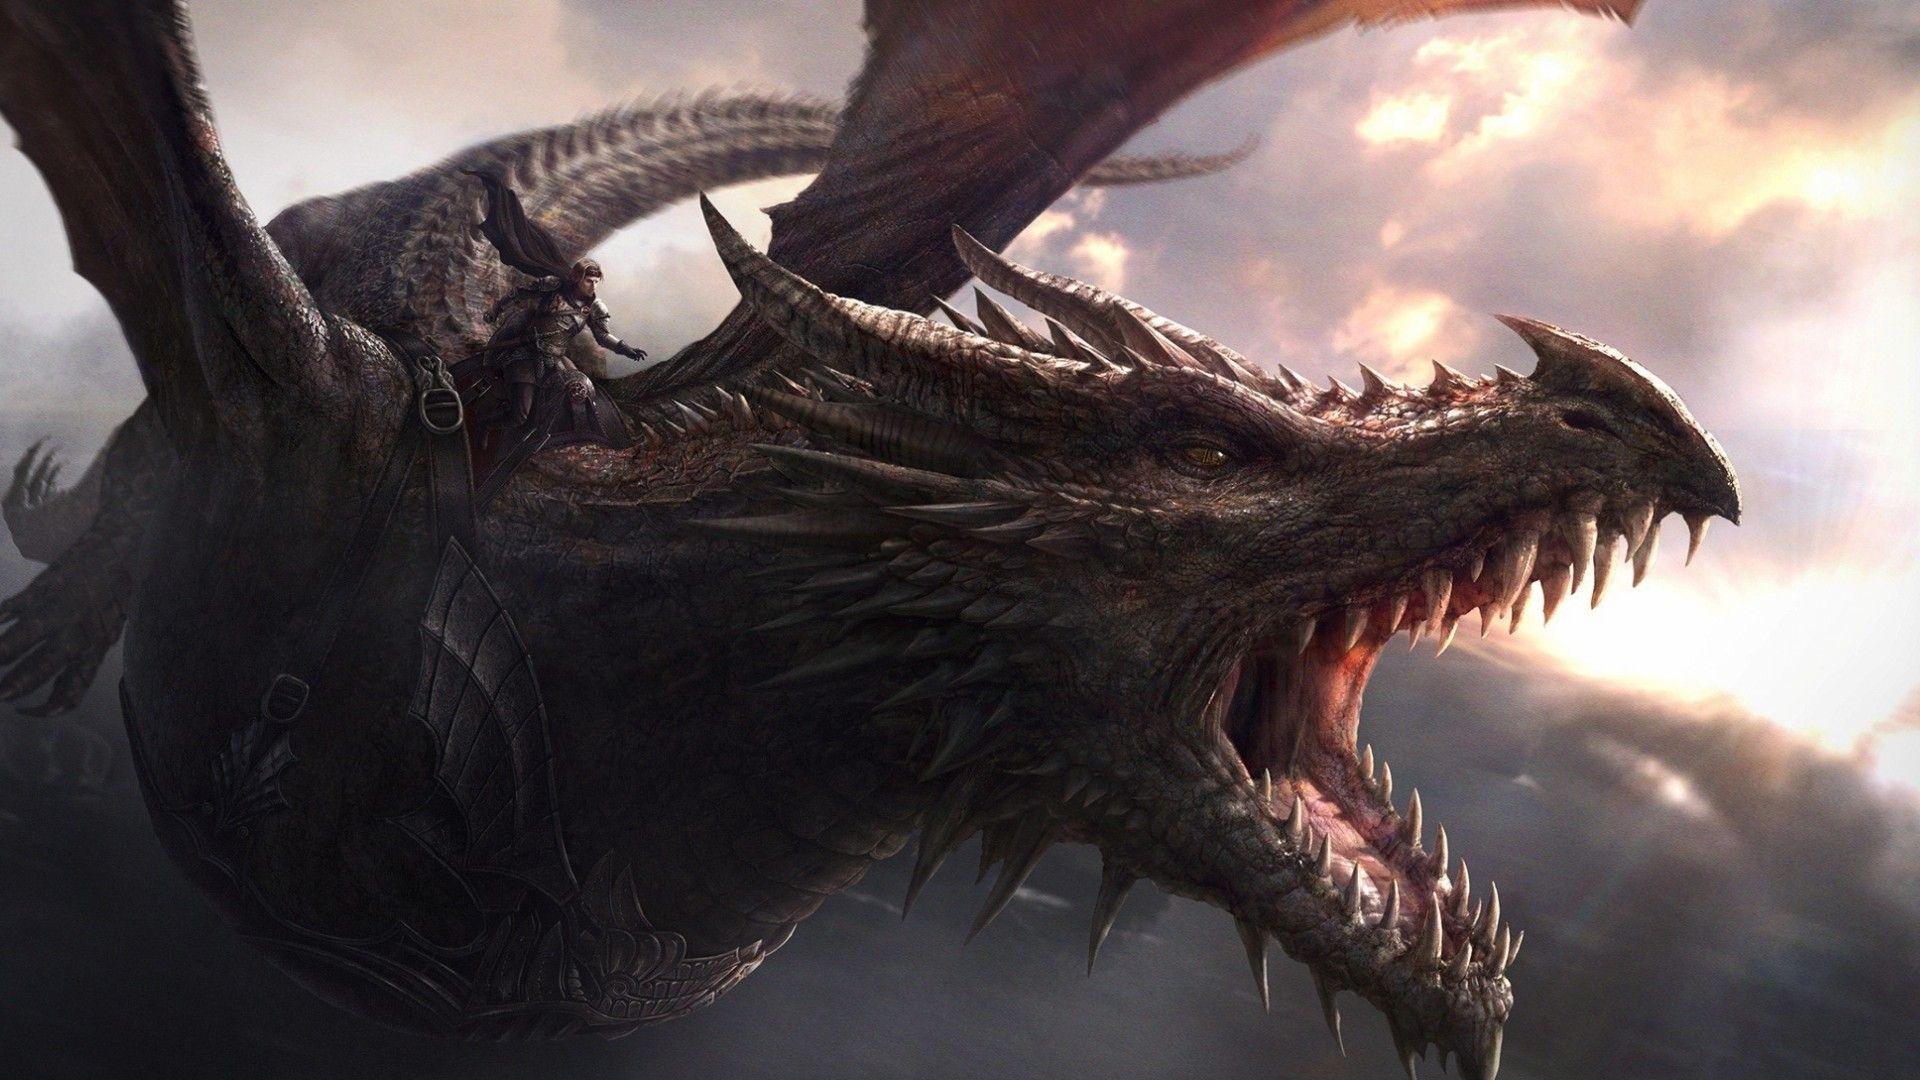 1920x1080 wallpaper game of thrones, game of thrones dragon art